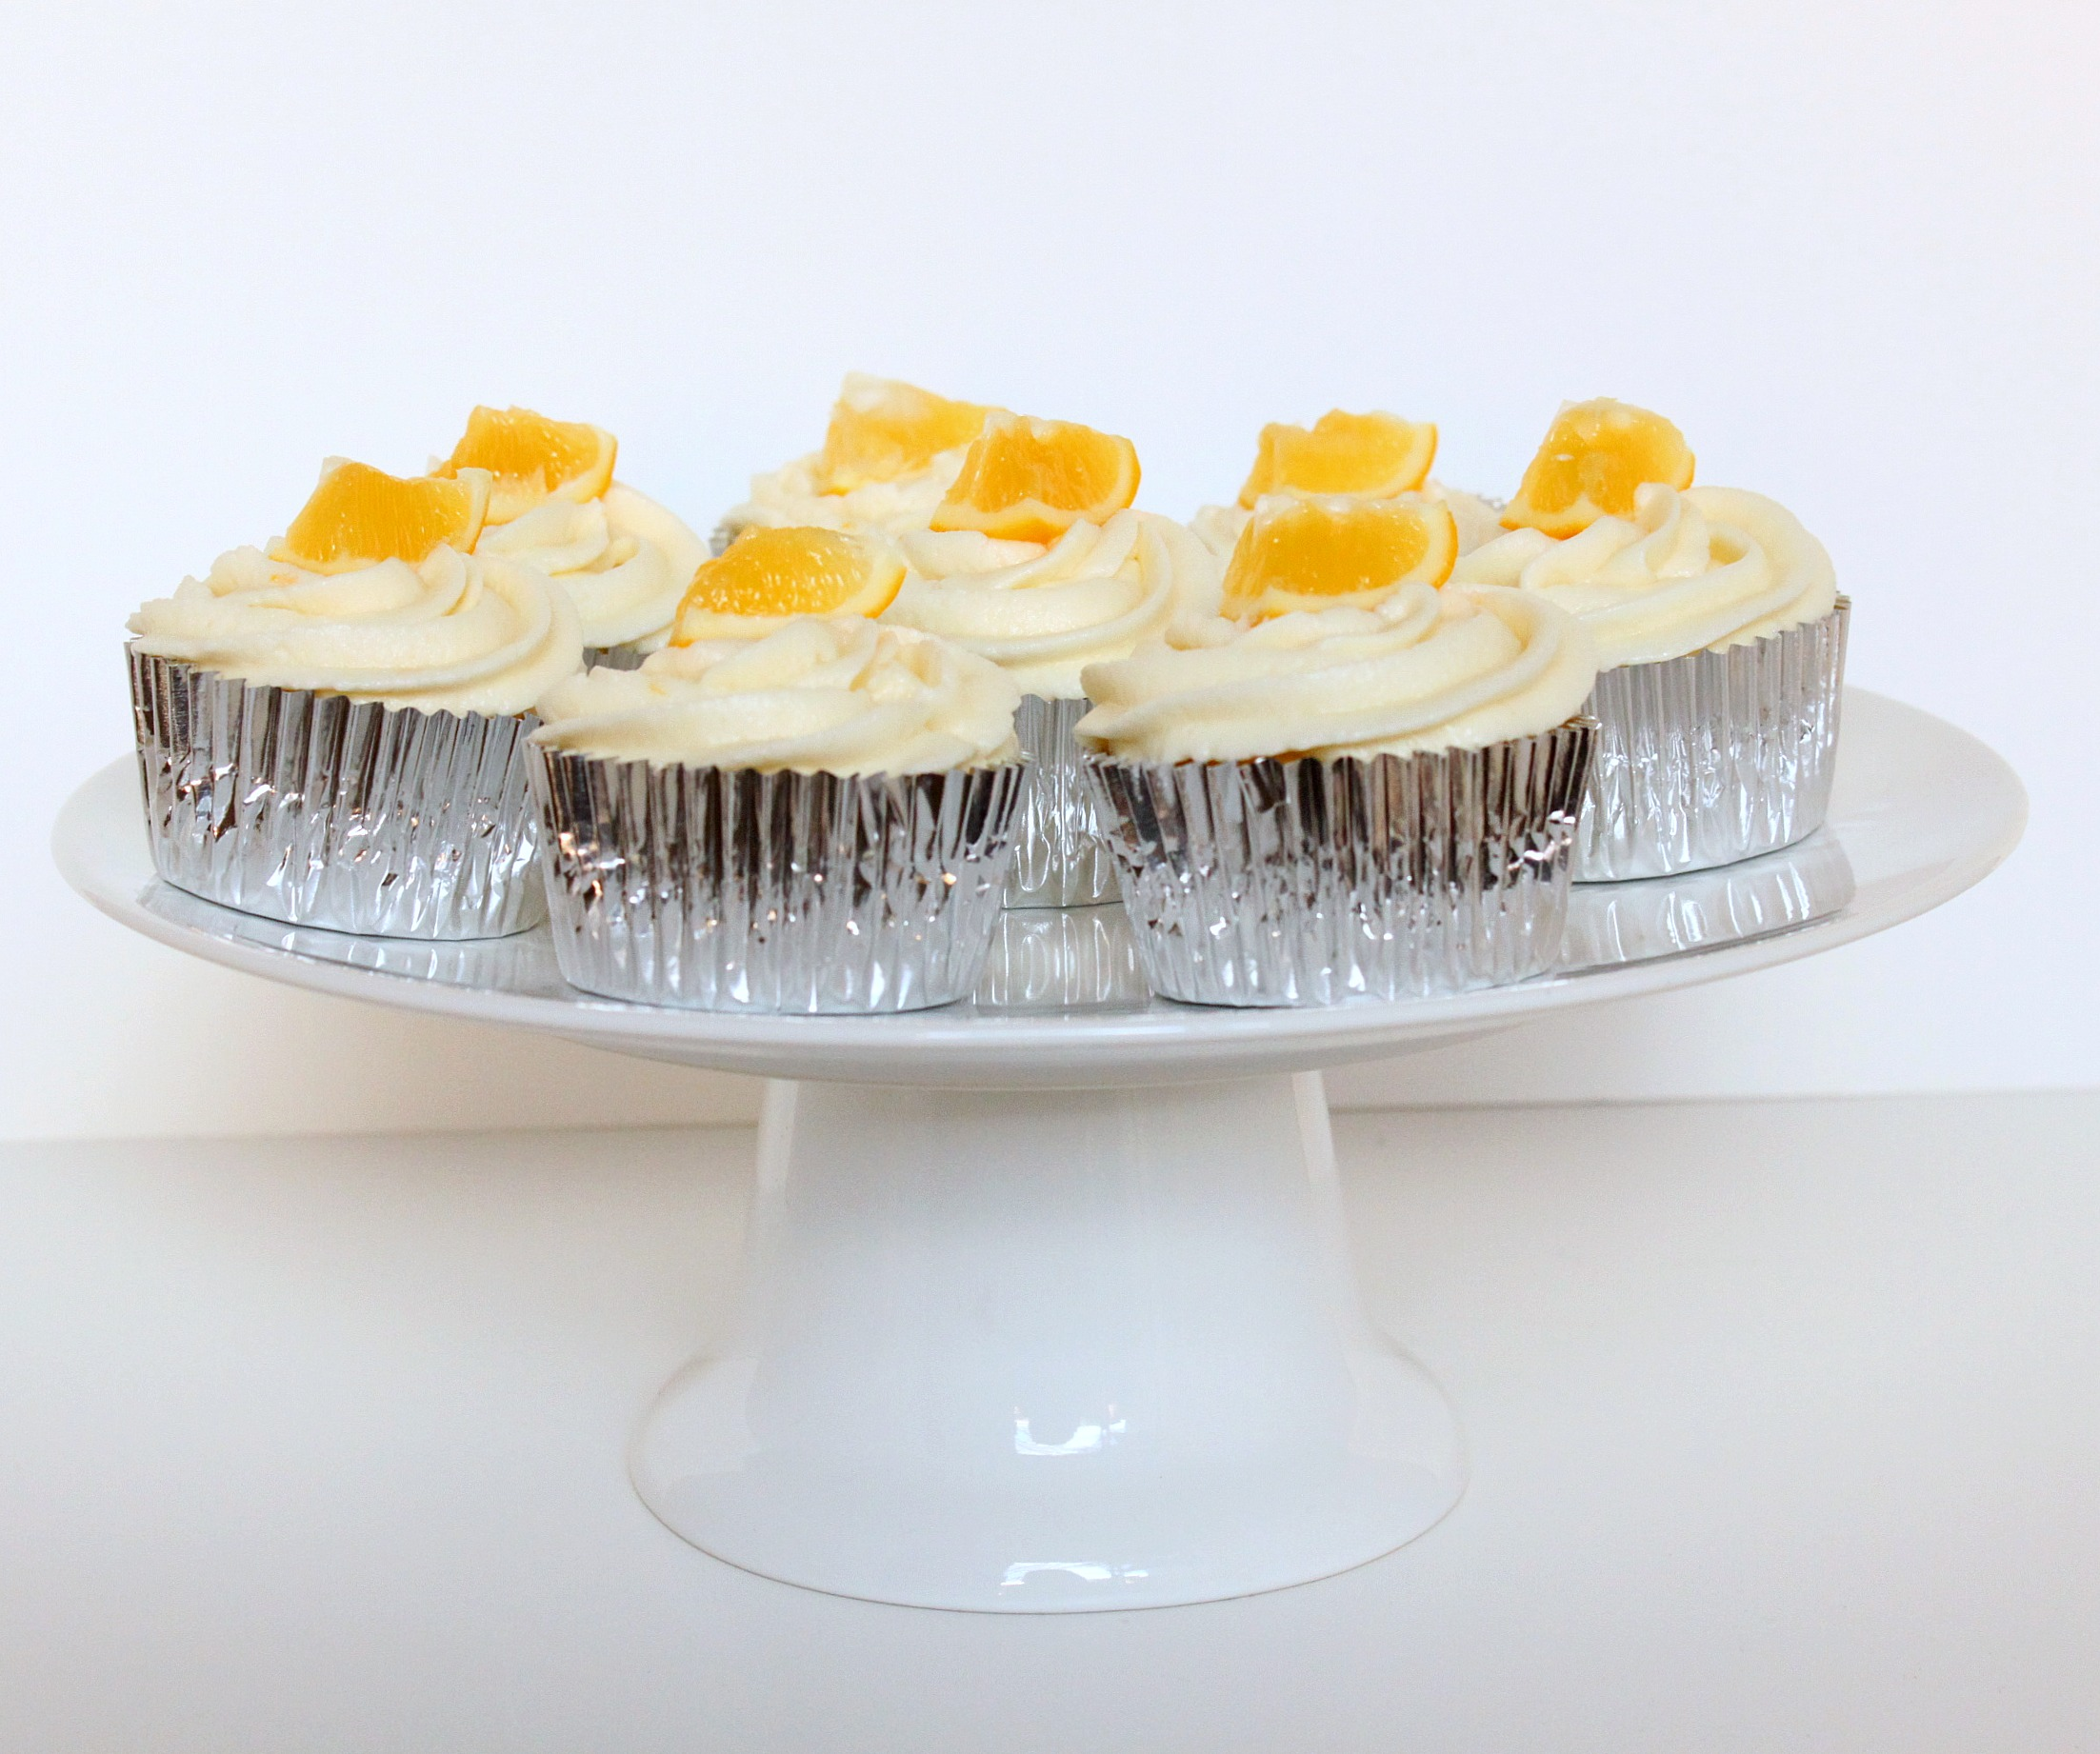 Plus, I was able to try out my new cake stand that I randomly bought ...